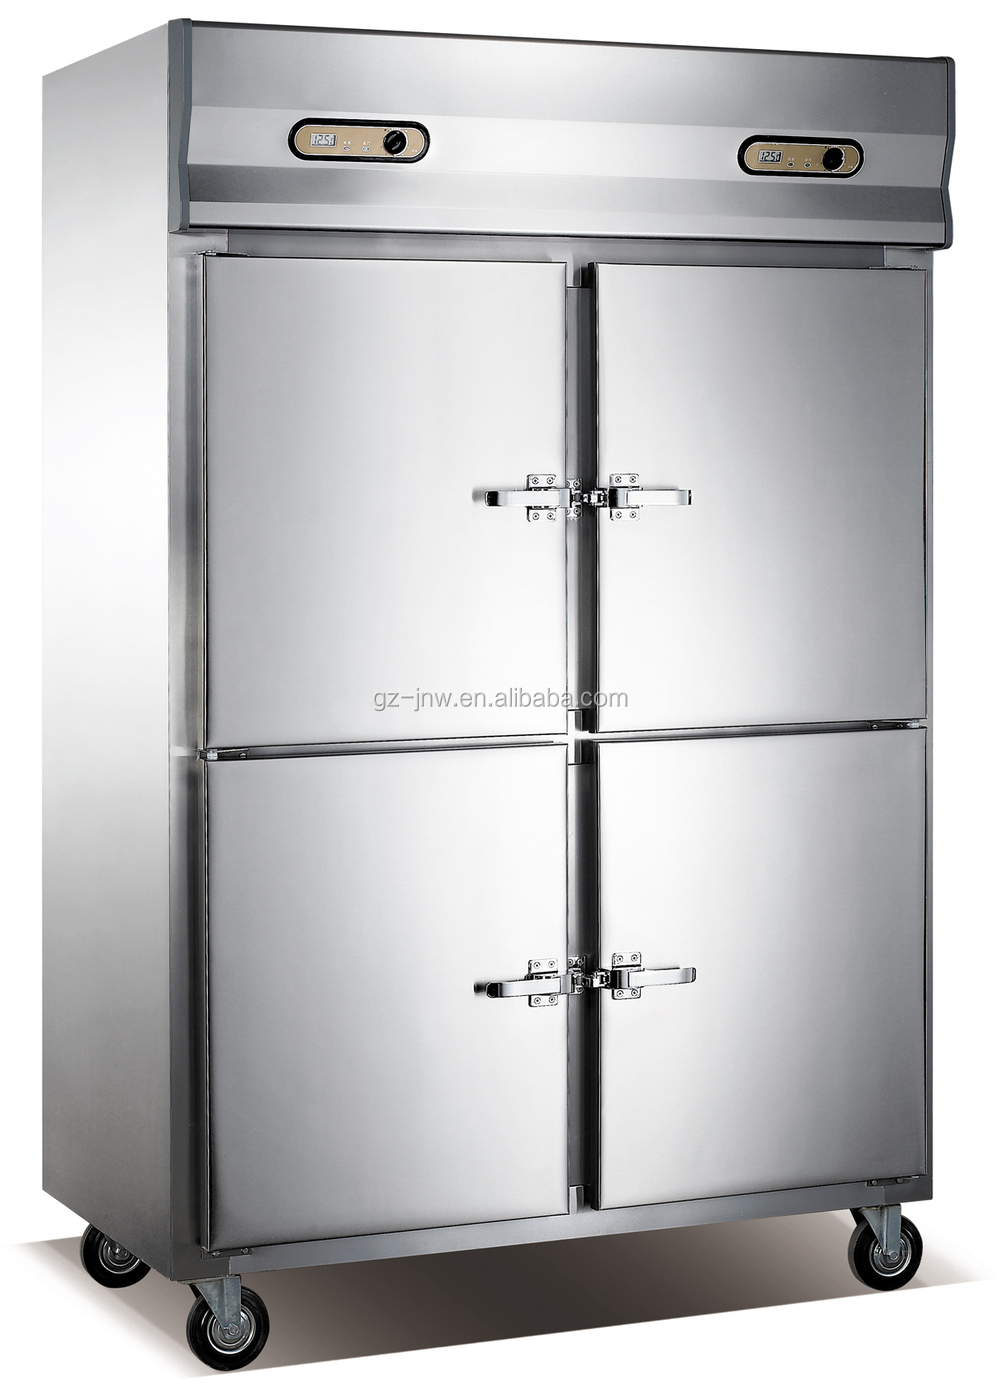 Four Door Commercial Refrigerator With Pricecommercial